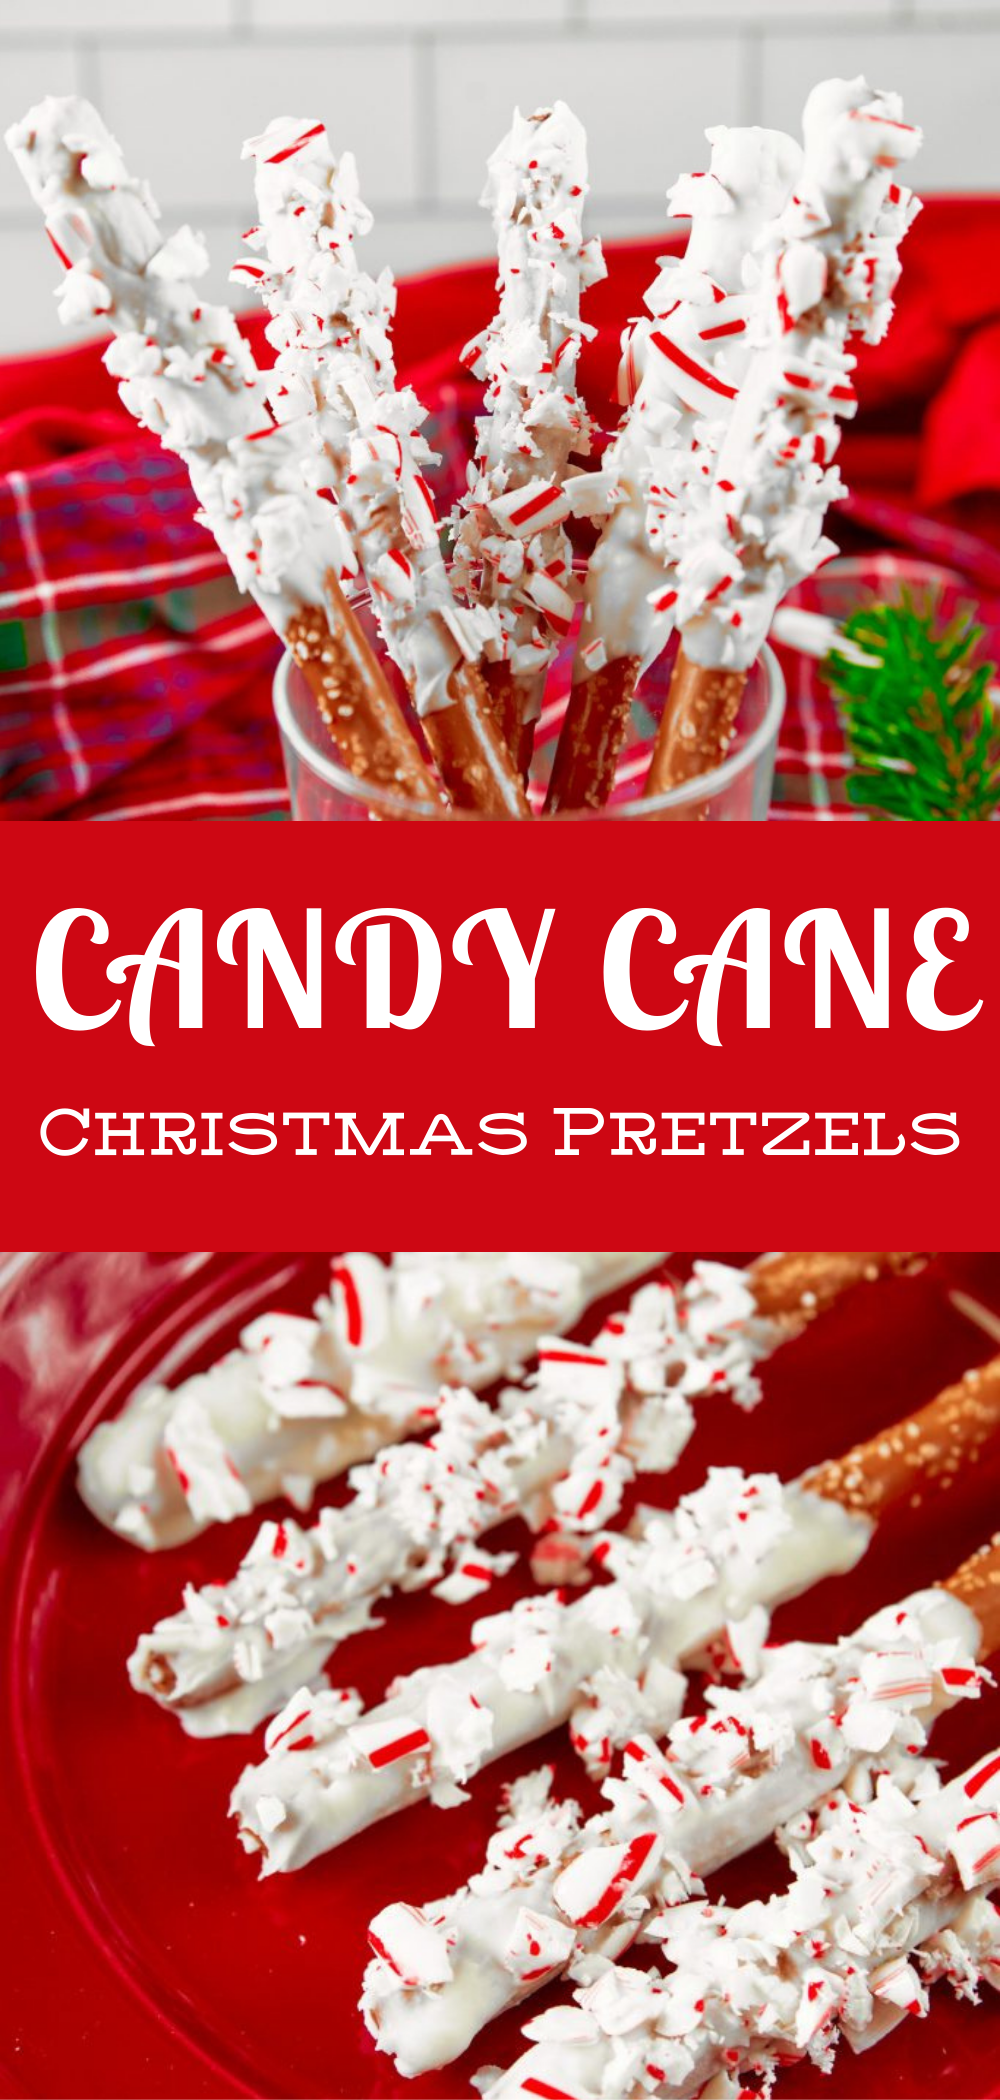 Candy Cane Christmas Pretzel Rods Wow It S Veggie Recipe In 2020 Best Christmas Recipes Christmas Party Food Holiday Recipes Christmas